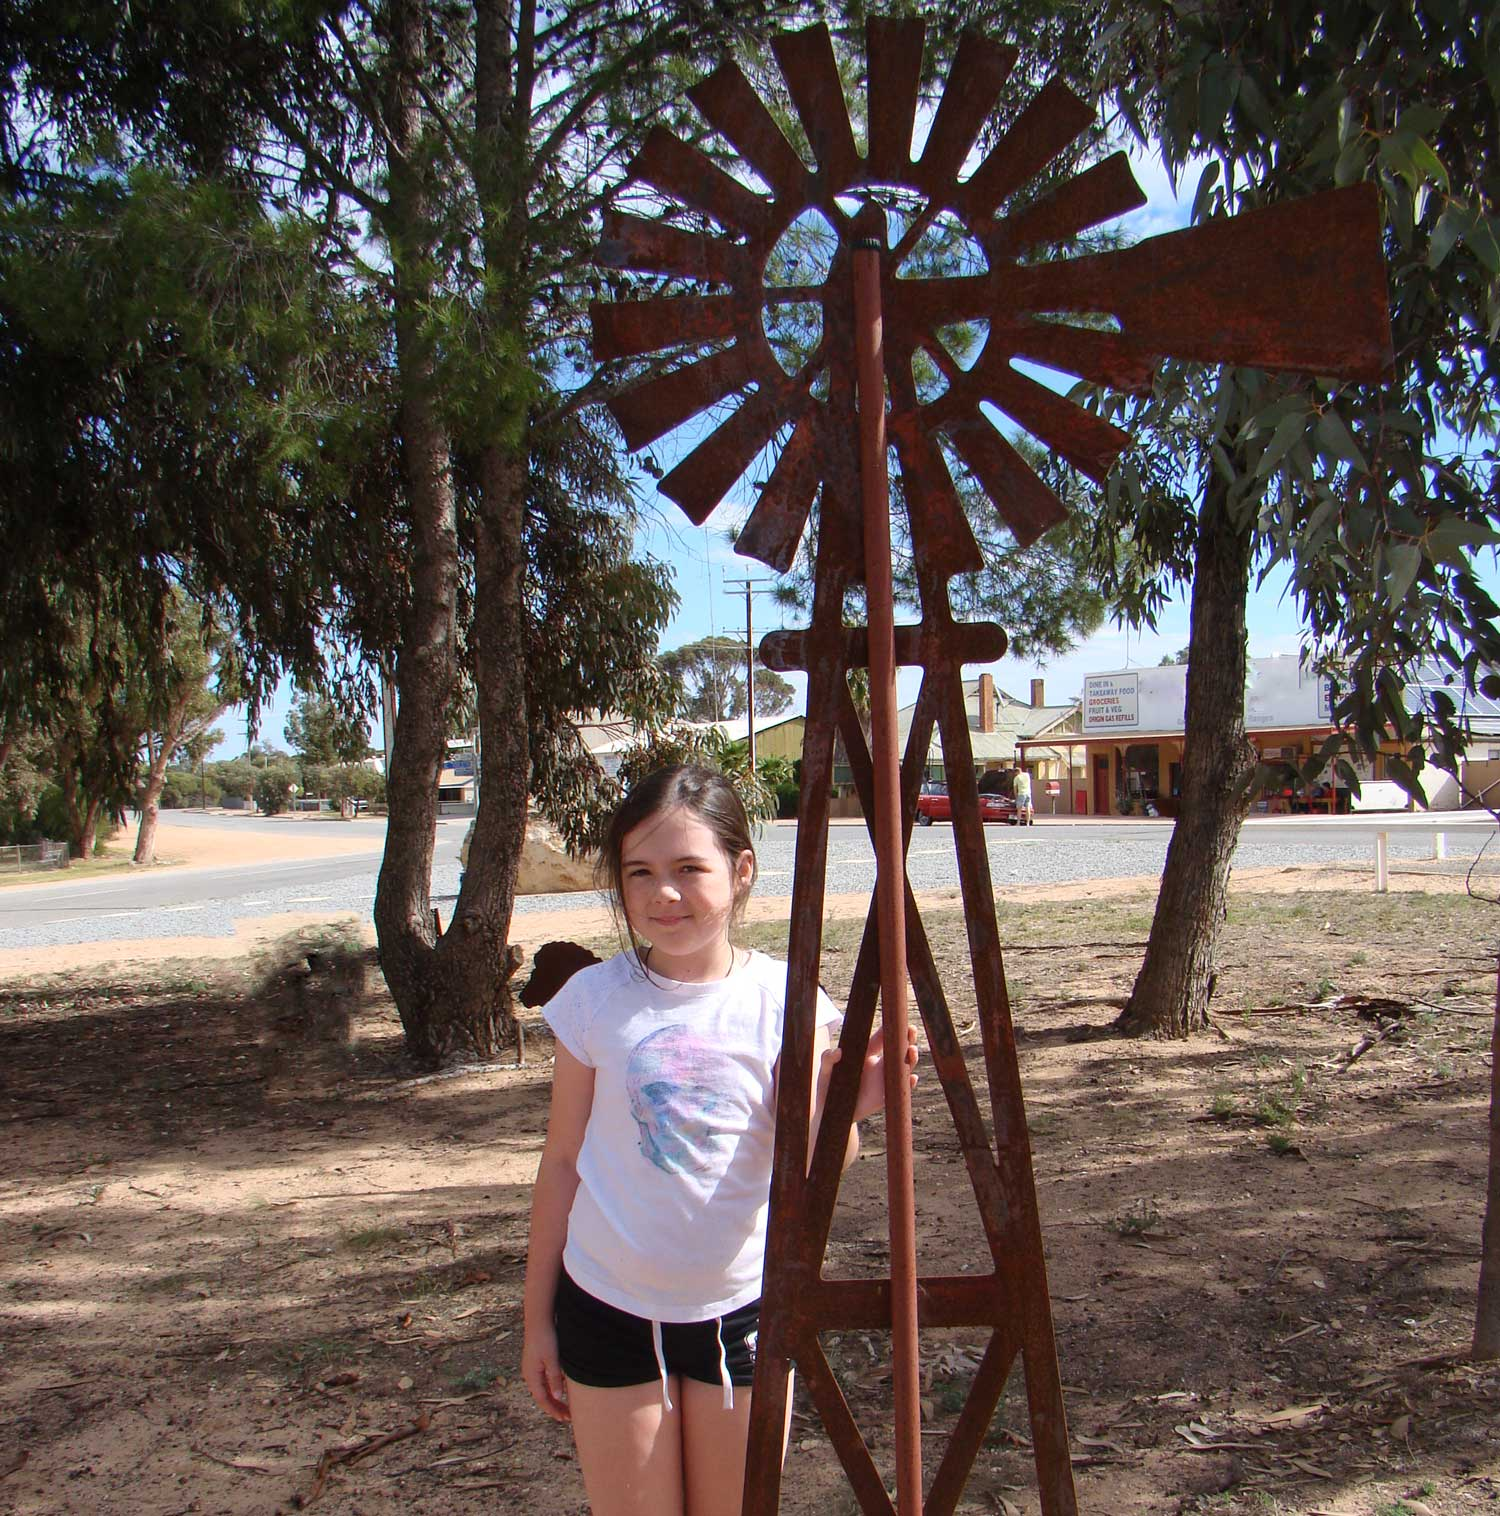 Tookii things to do with kids with windmill one of the outdoor activities for kids